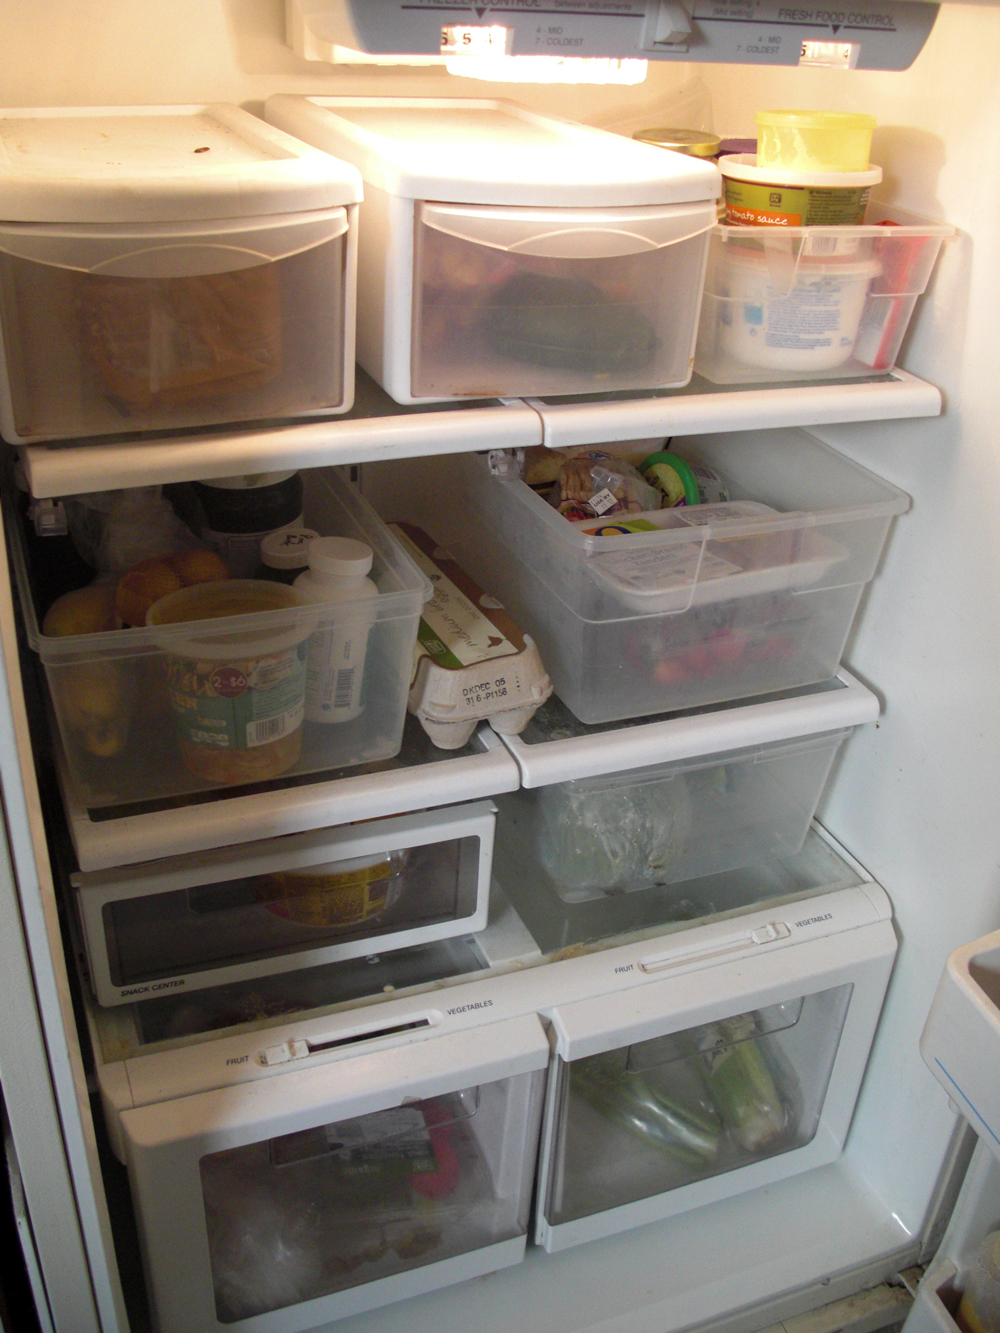 Storage Containers For Refrigerator Listitdallas